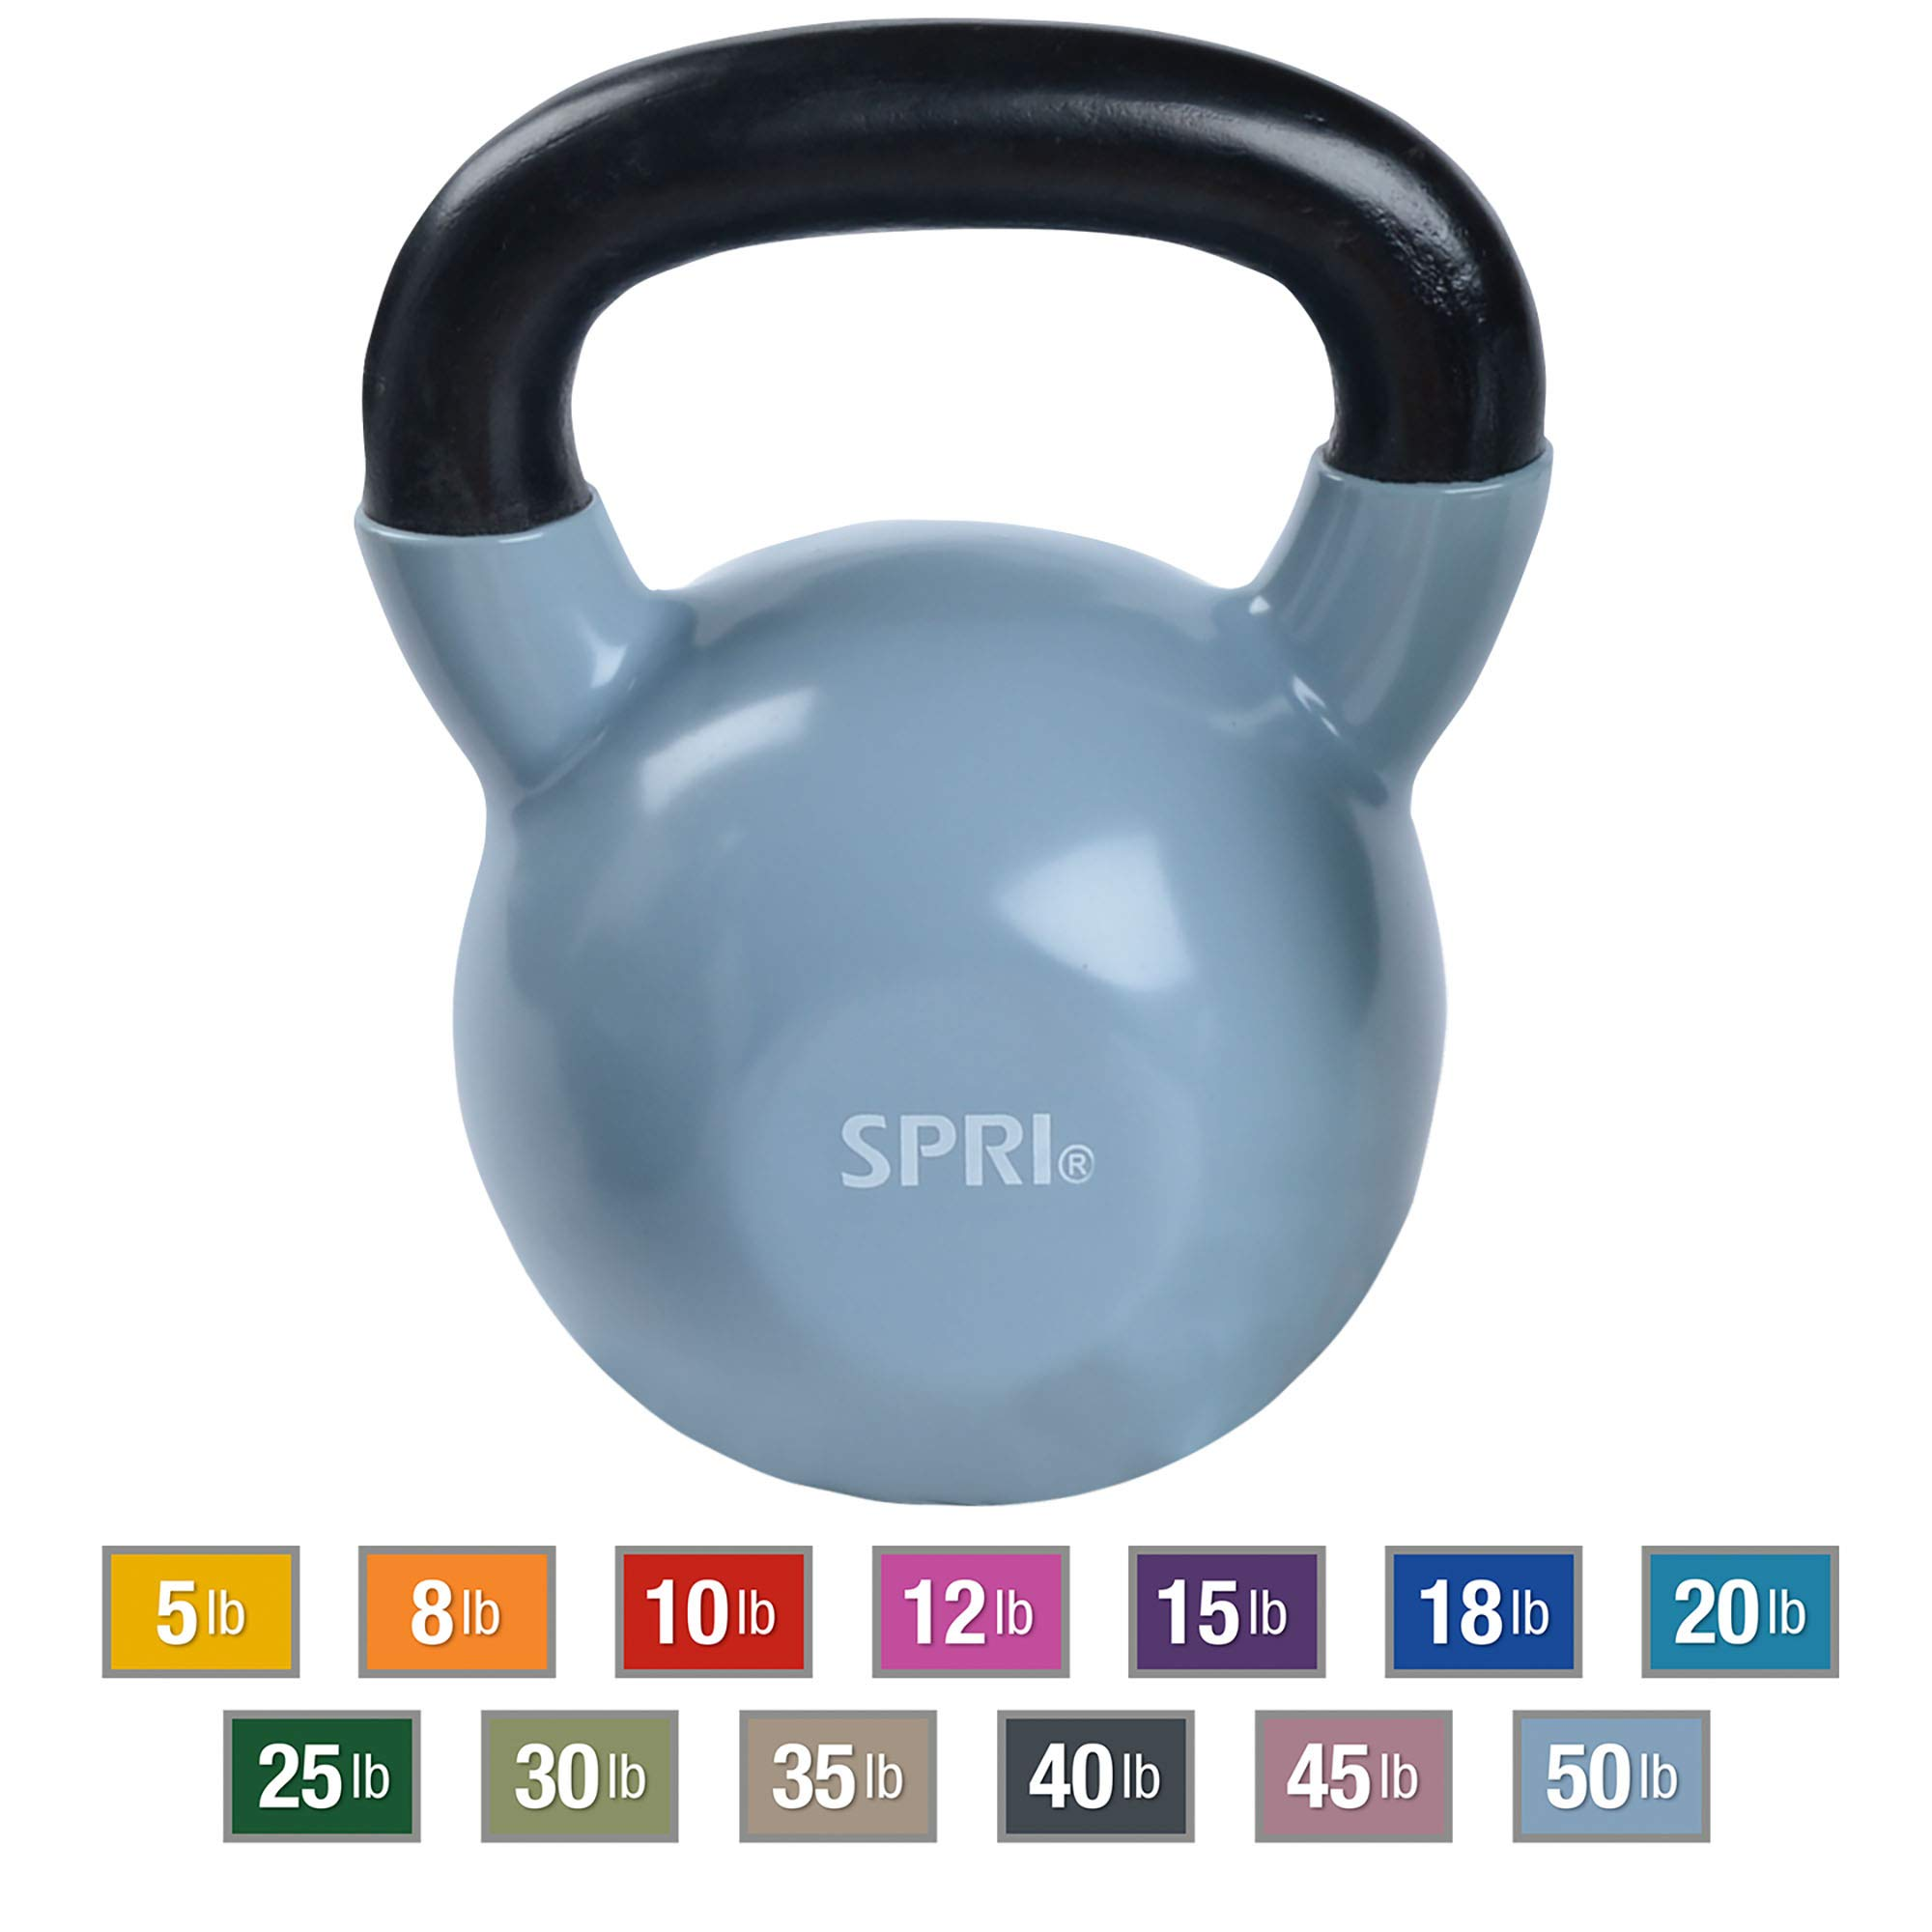 SPRI Kettlebell Weights Deluxe Cast Iron Vinyl Coated Comfort Grip Wide Handle Color Coded Kettlebell Weight Set (Light Blue, 50-Pound)